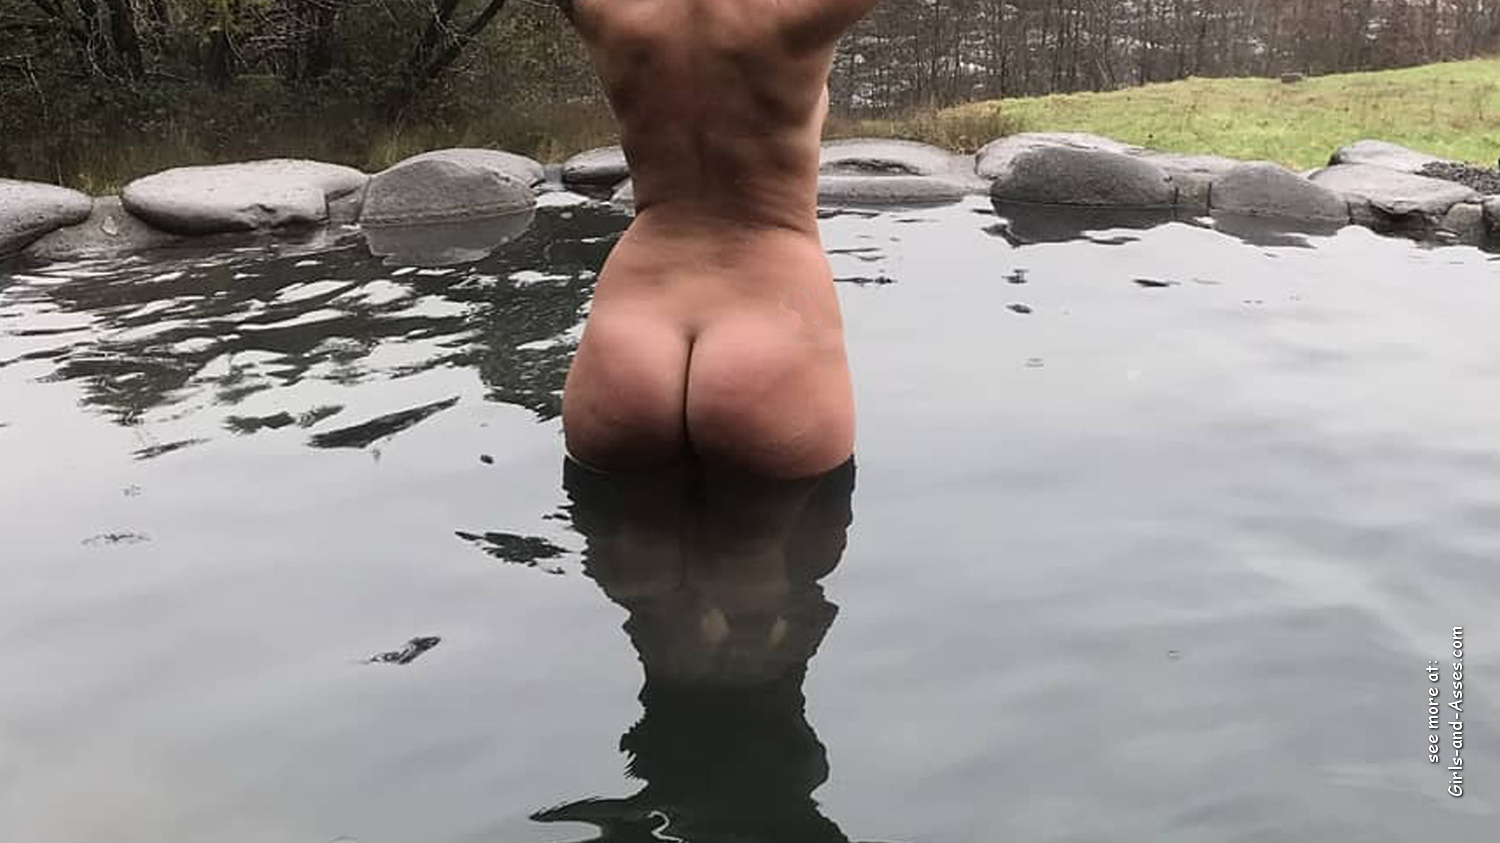 naked girl with big ass in a river picture 04939